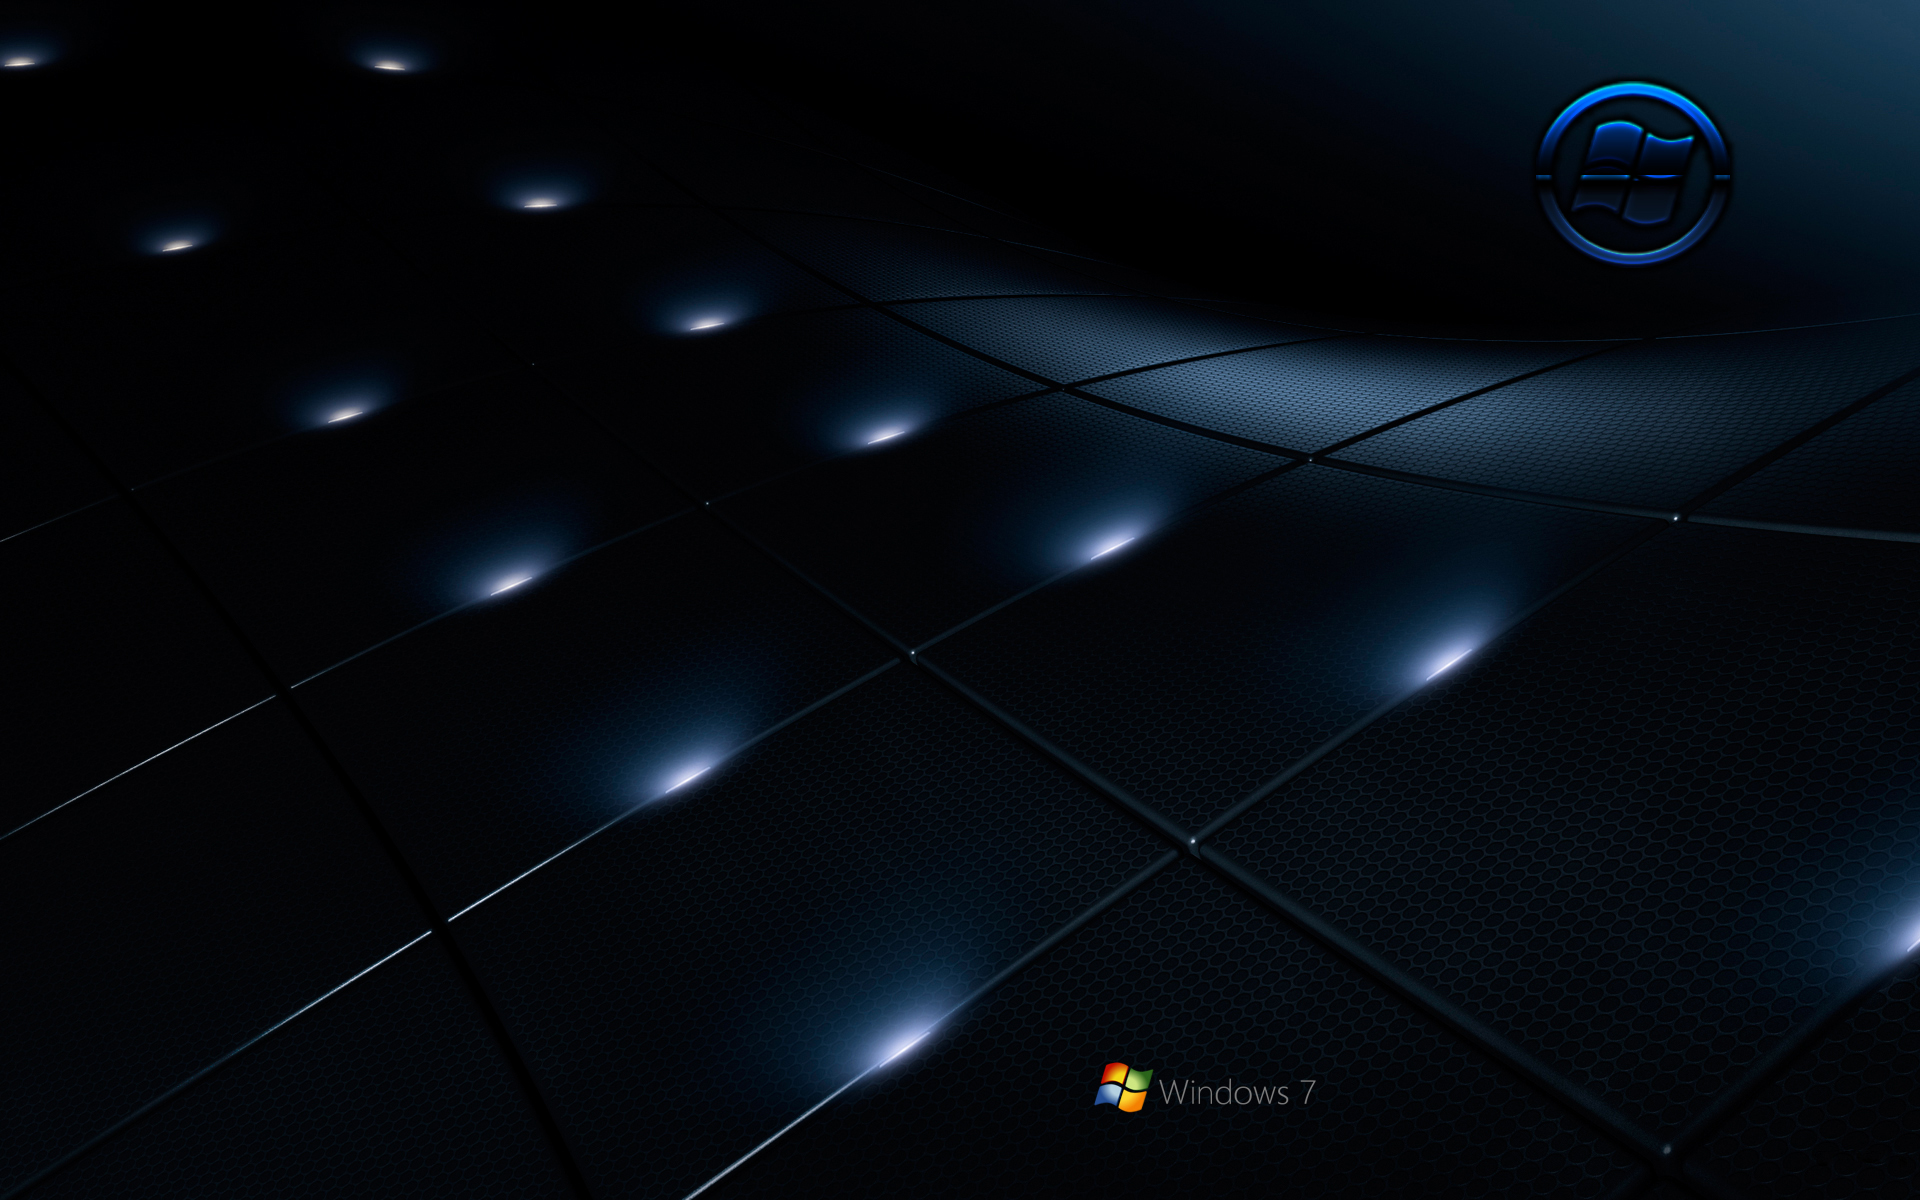 Windows 7 Black wallpaper by kubines 1920x1200